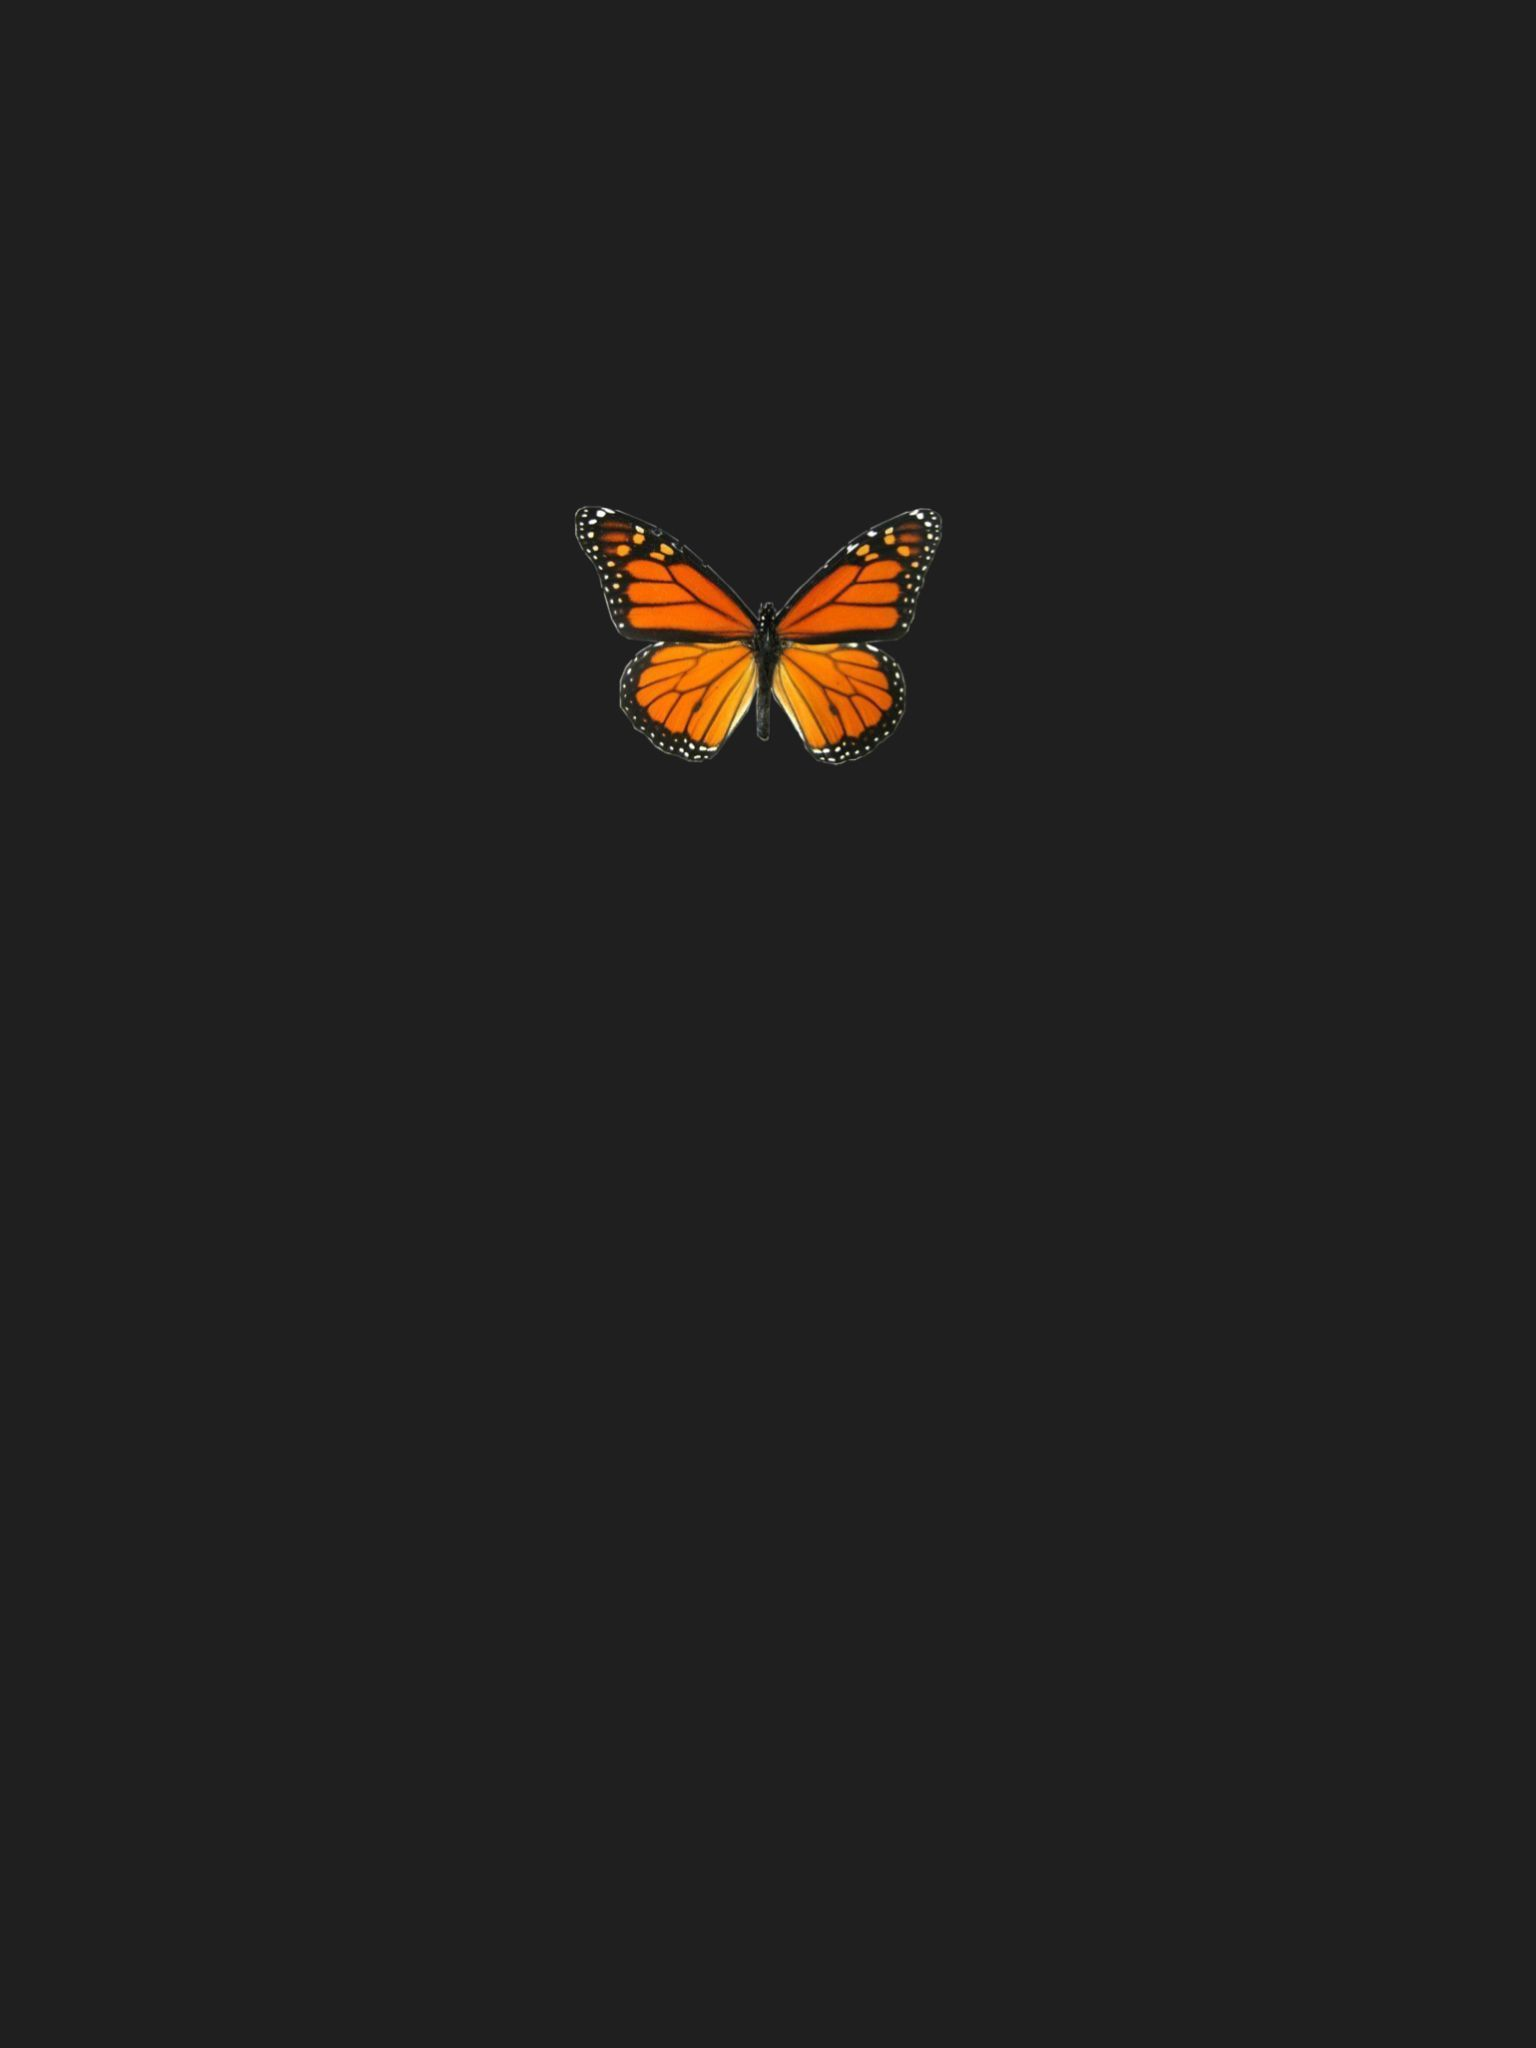 ... #butterfly tumblr